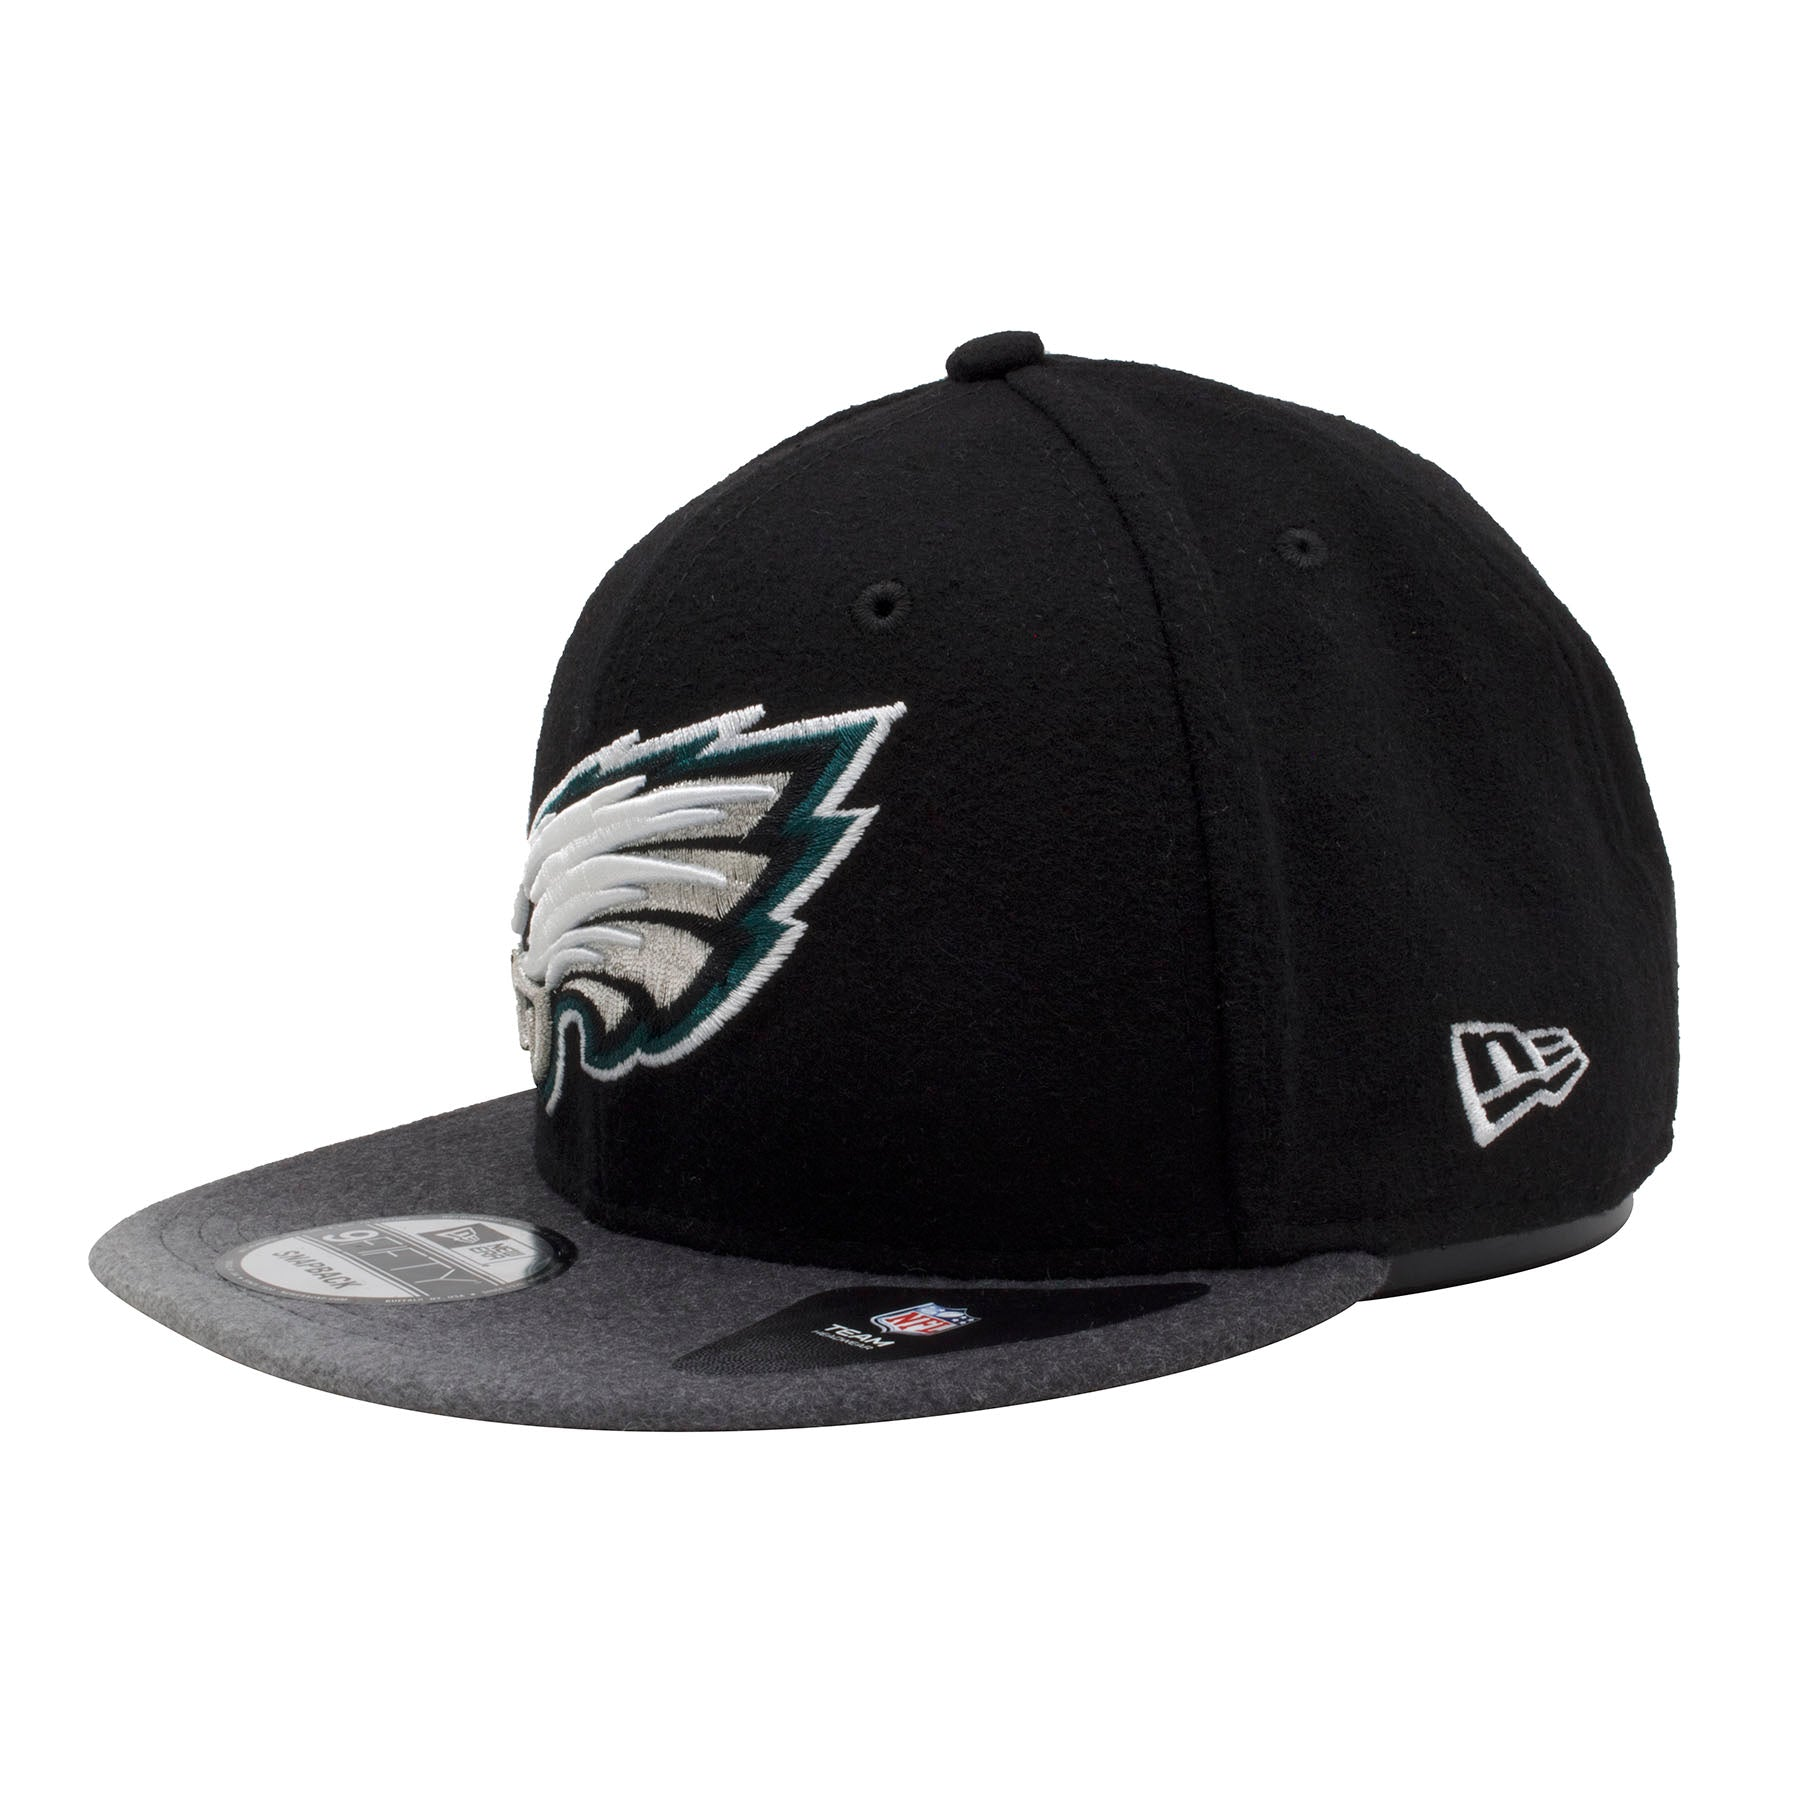 fb1cfec4cef ... the left side of the philadelphia eagles snapback hat has the new era  logo embroidered in ...